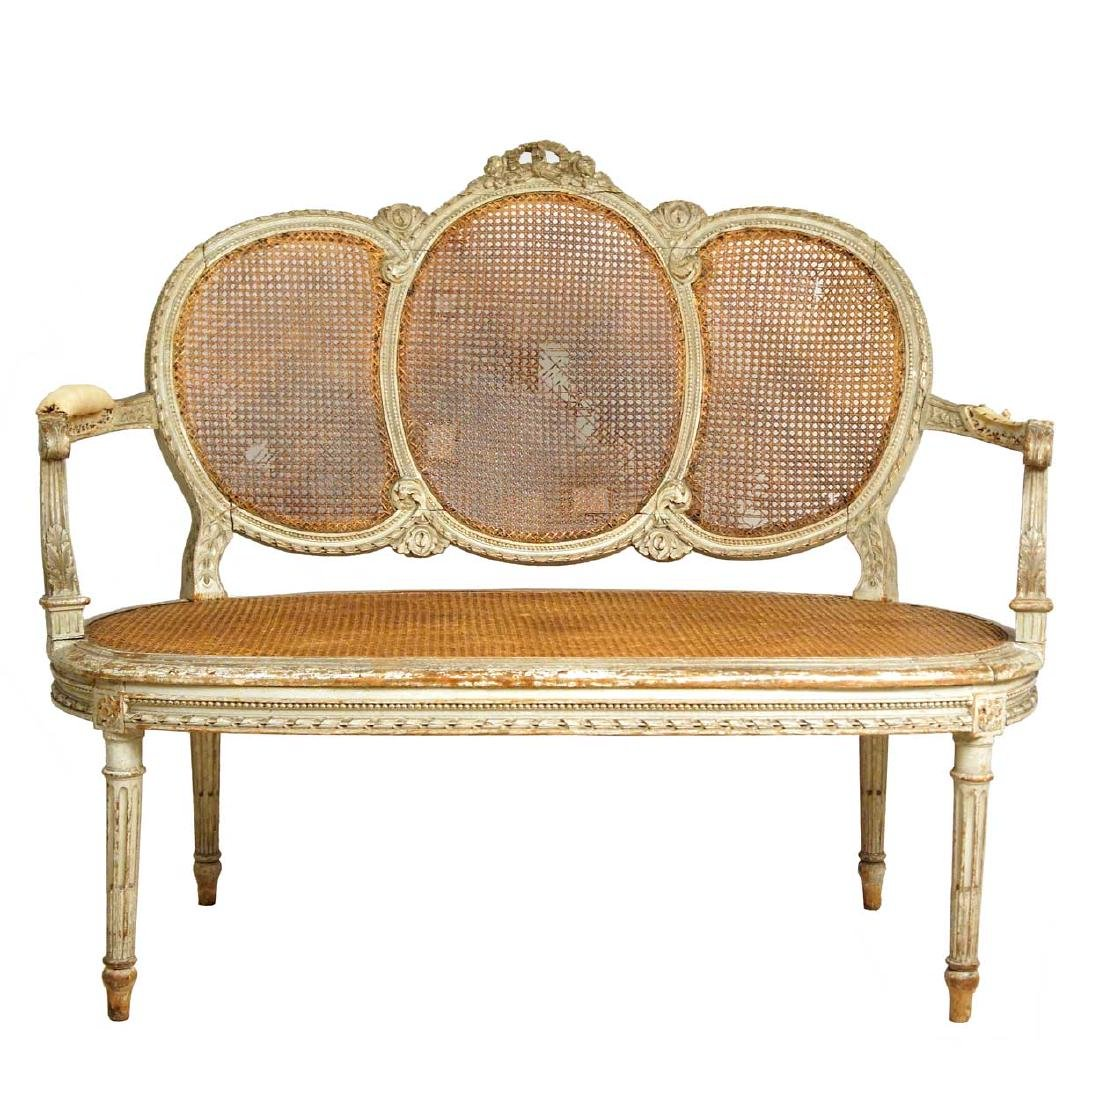 French Louis XVI Revival Painted Caned Chairback Settee